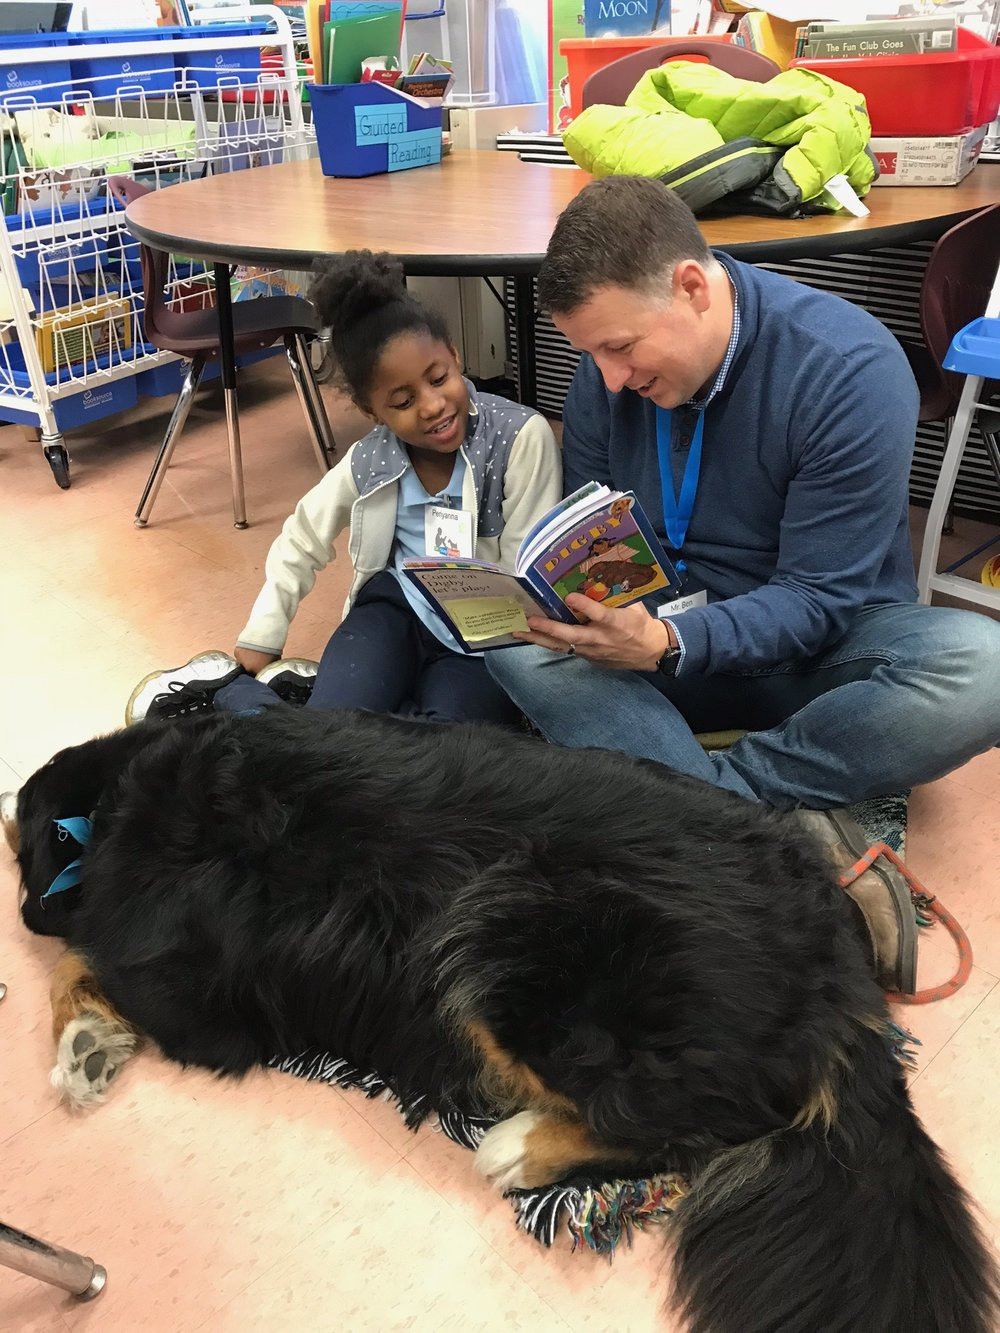 Board Member and Dog Team volunteer Ben reading with a second grade student while Certified Reading Assistance Dog Hank sleeps and waits for pets during a SitStayRead Tail Blazers program.